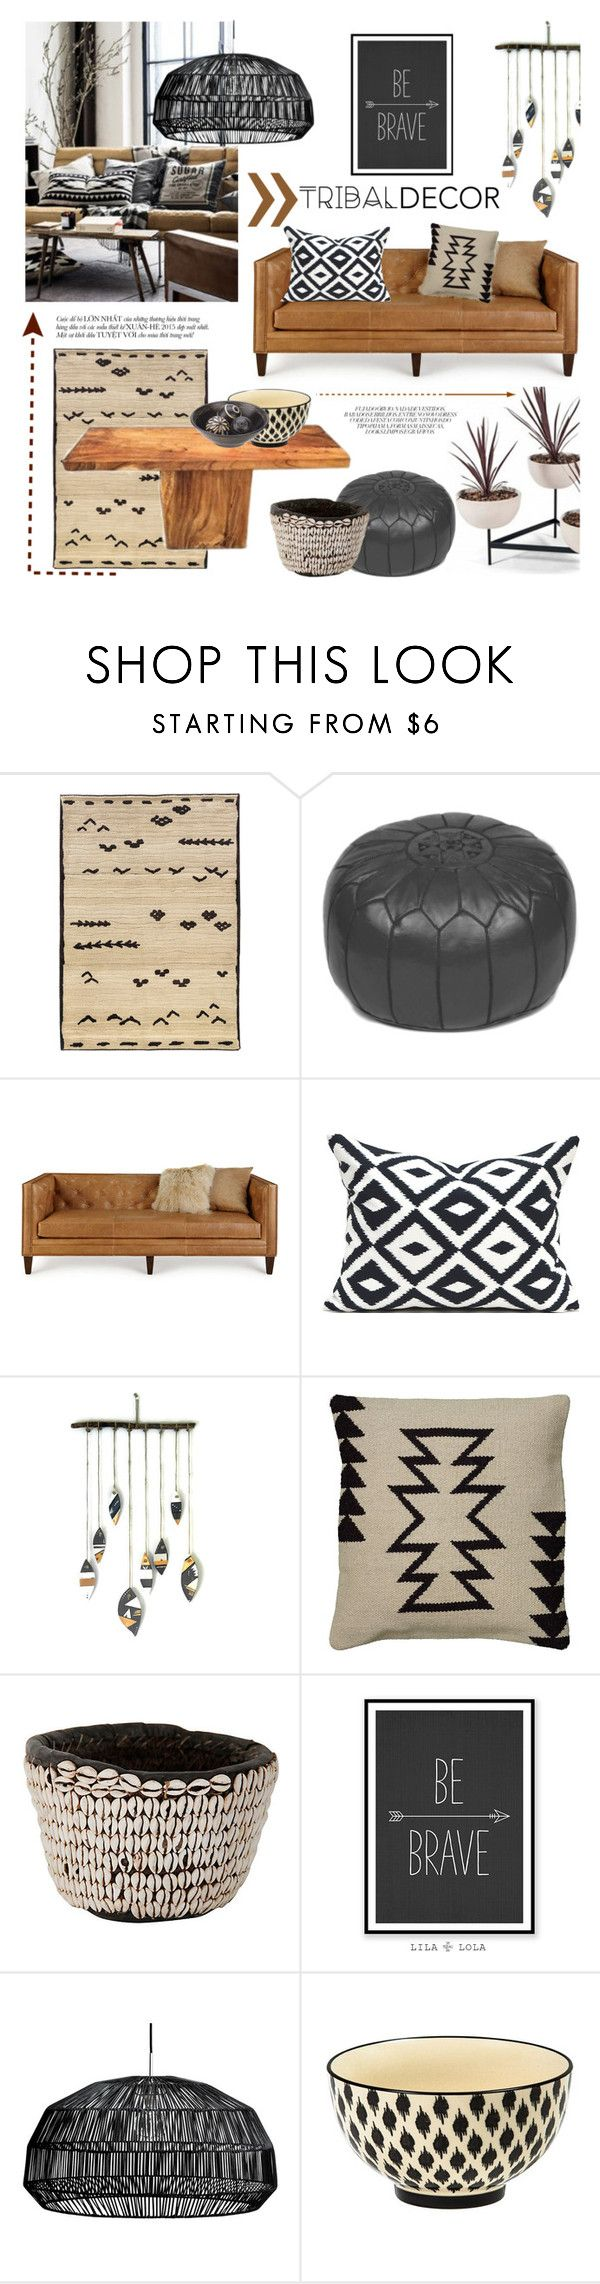 """Tribal Decor"" by helenevlacho on Polyvore featuring interior, interiors, interior design, home, home decor, interior decorating, Oriental Weavers, Massoud, Rizzy Home and Ay Illuminate"